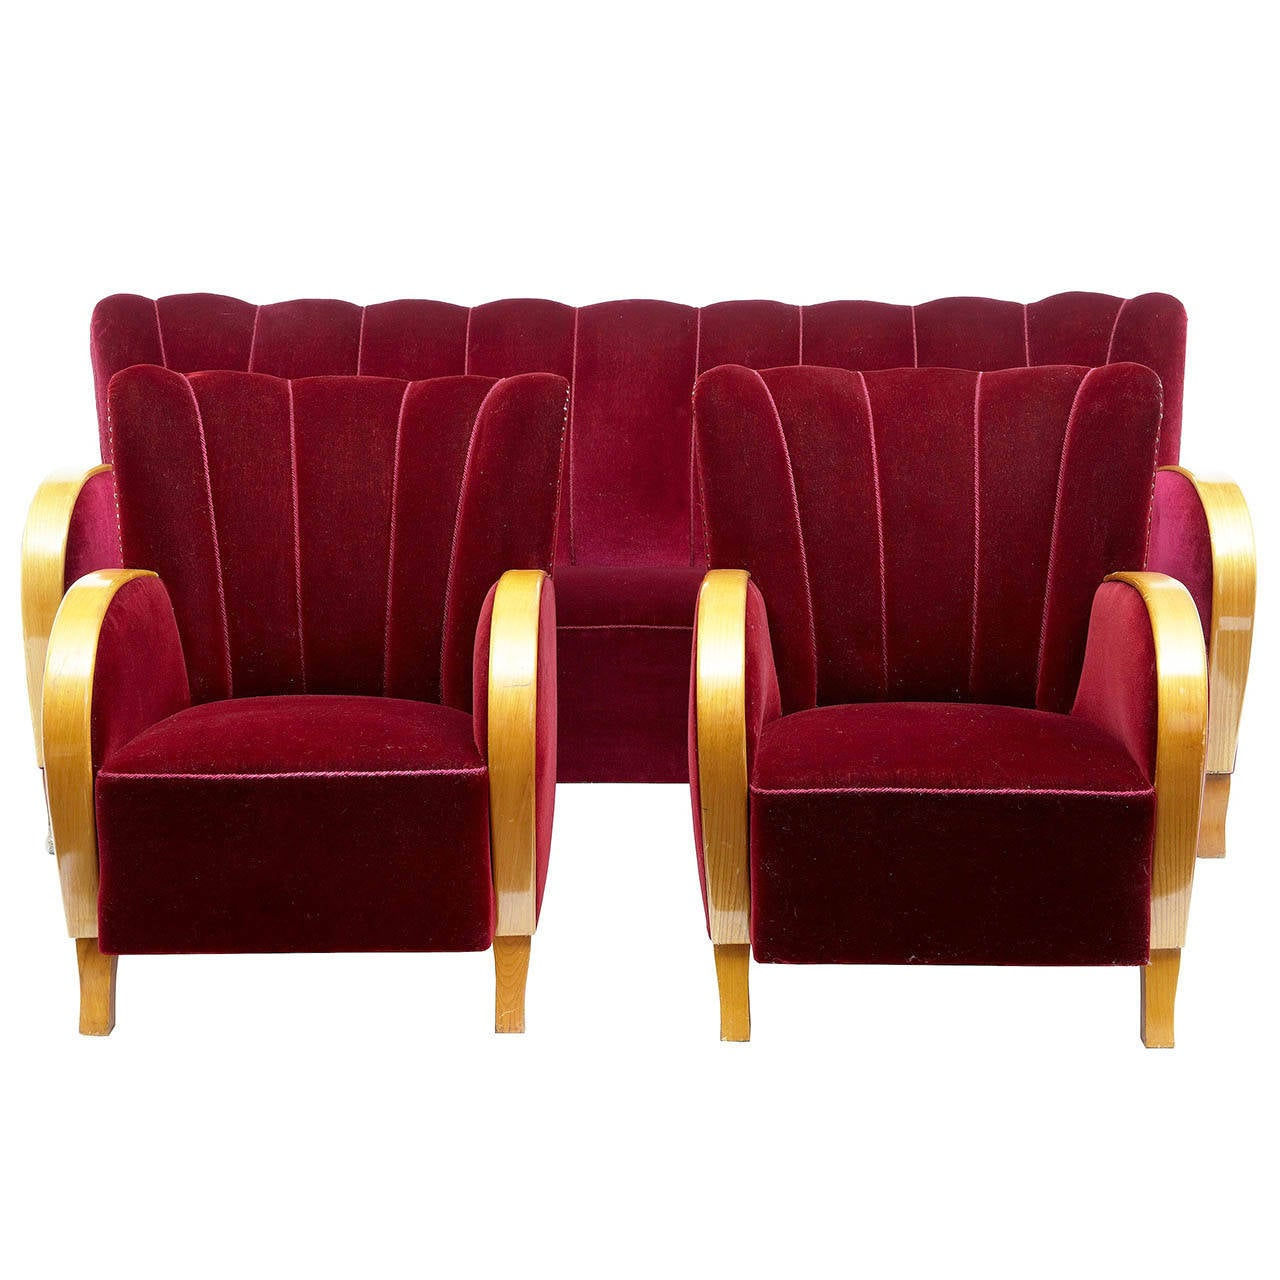 1960s retro modern shell back three piece suite of sofa and chairs at